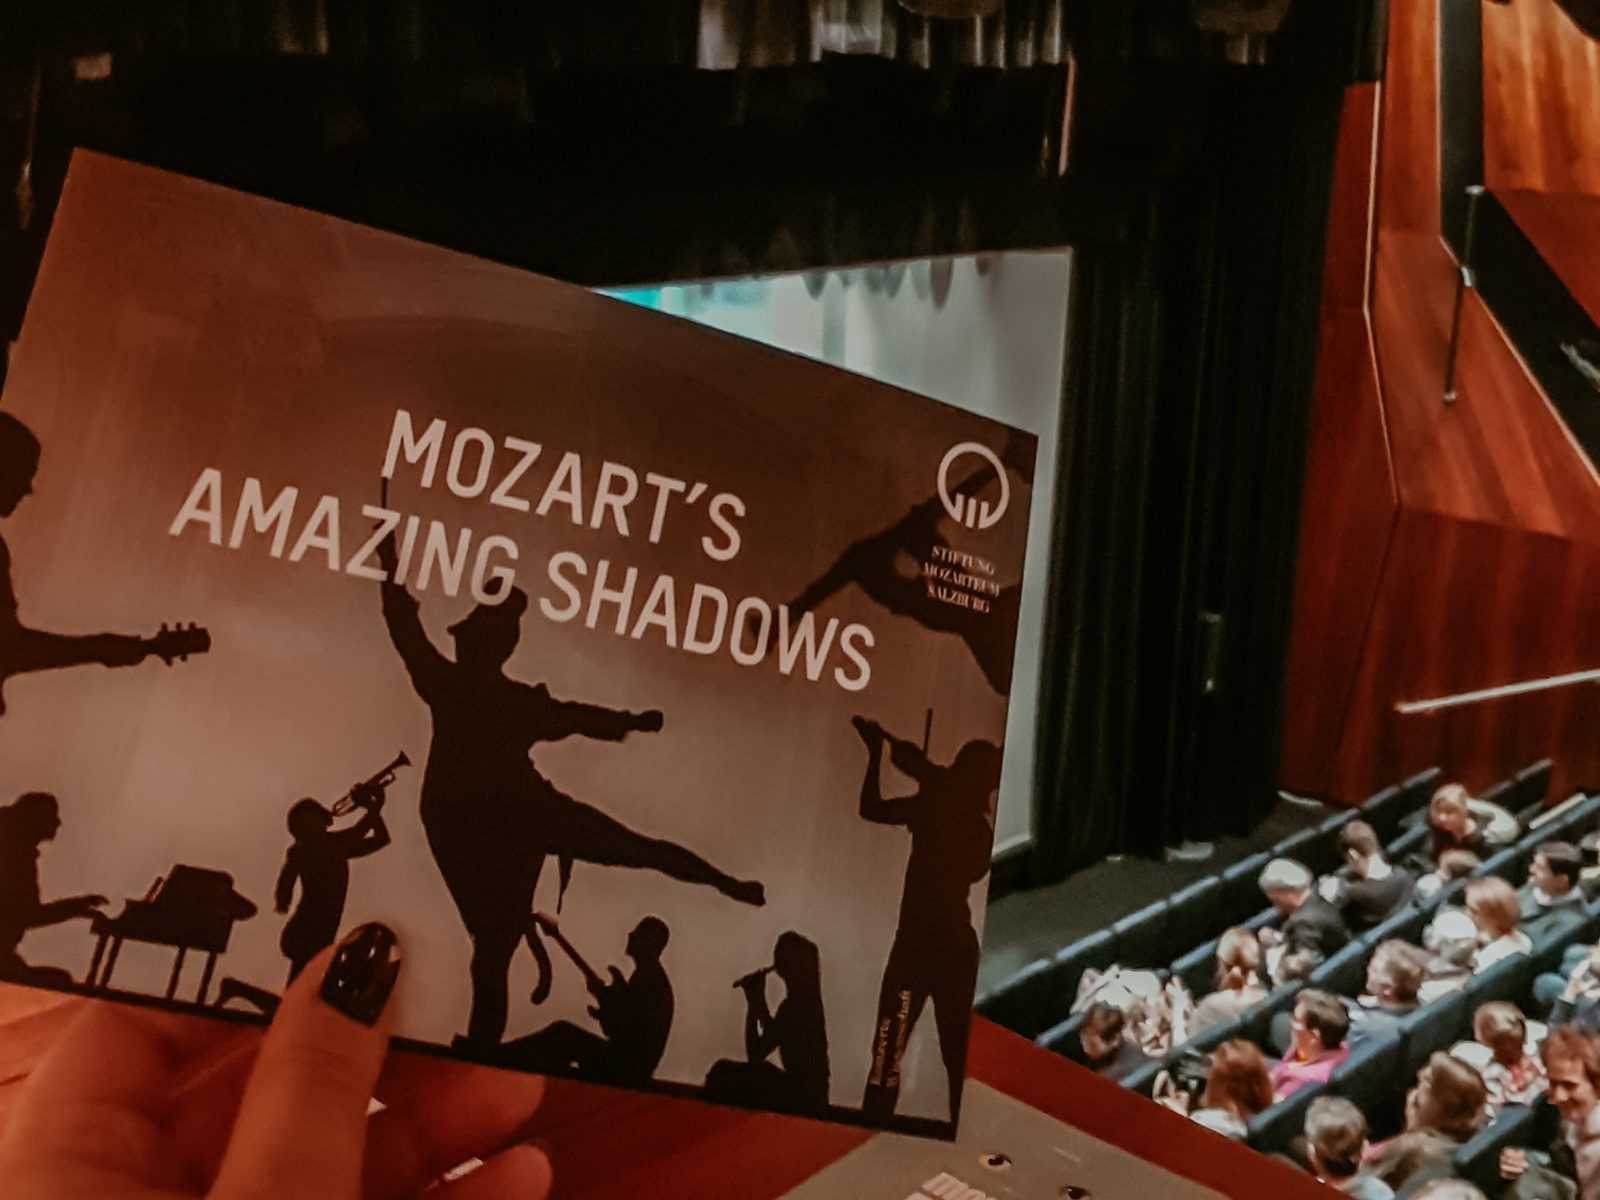 mozart s amazing shadows